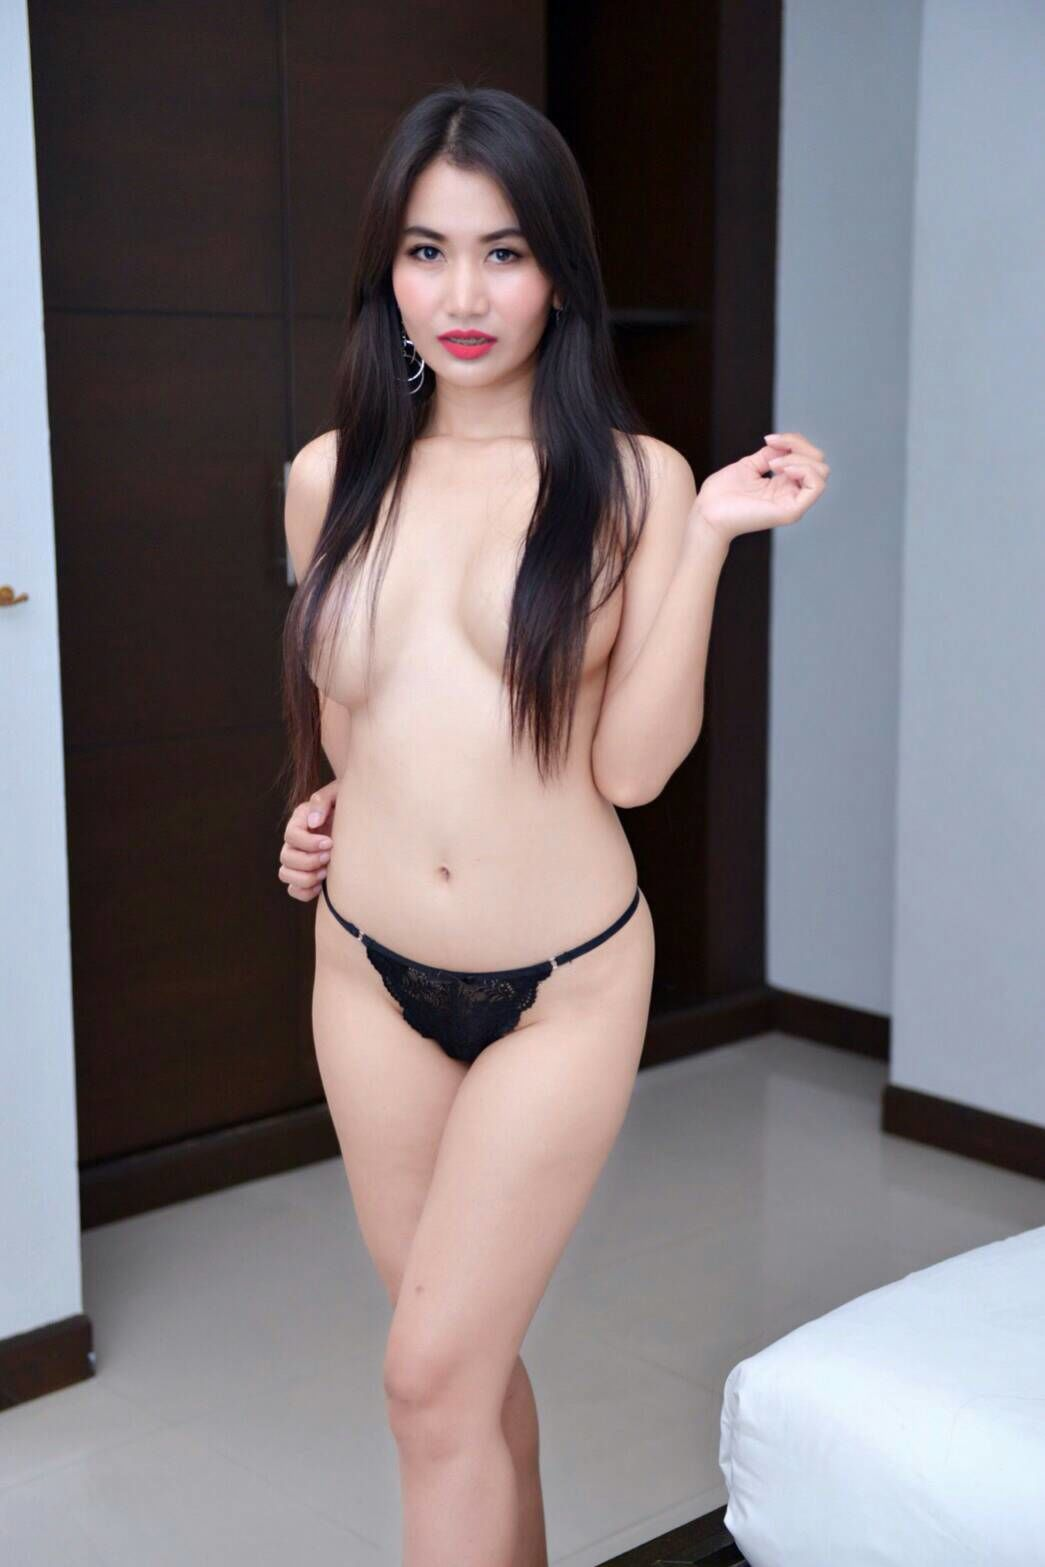 Kinky Dating Shemake Escort